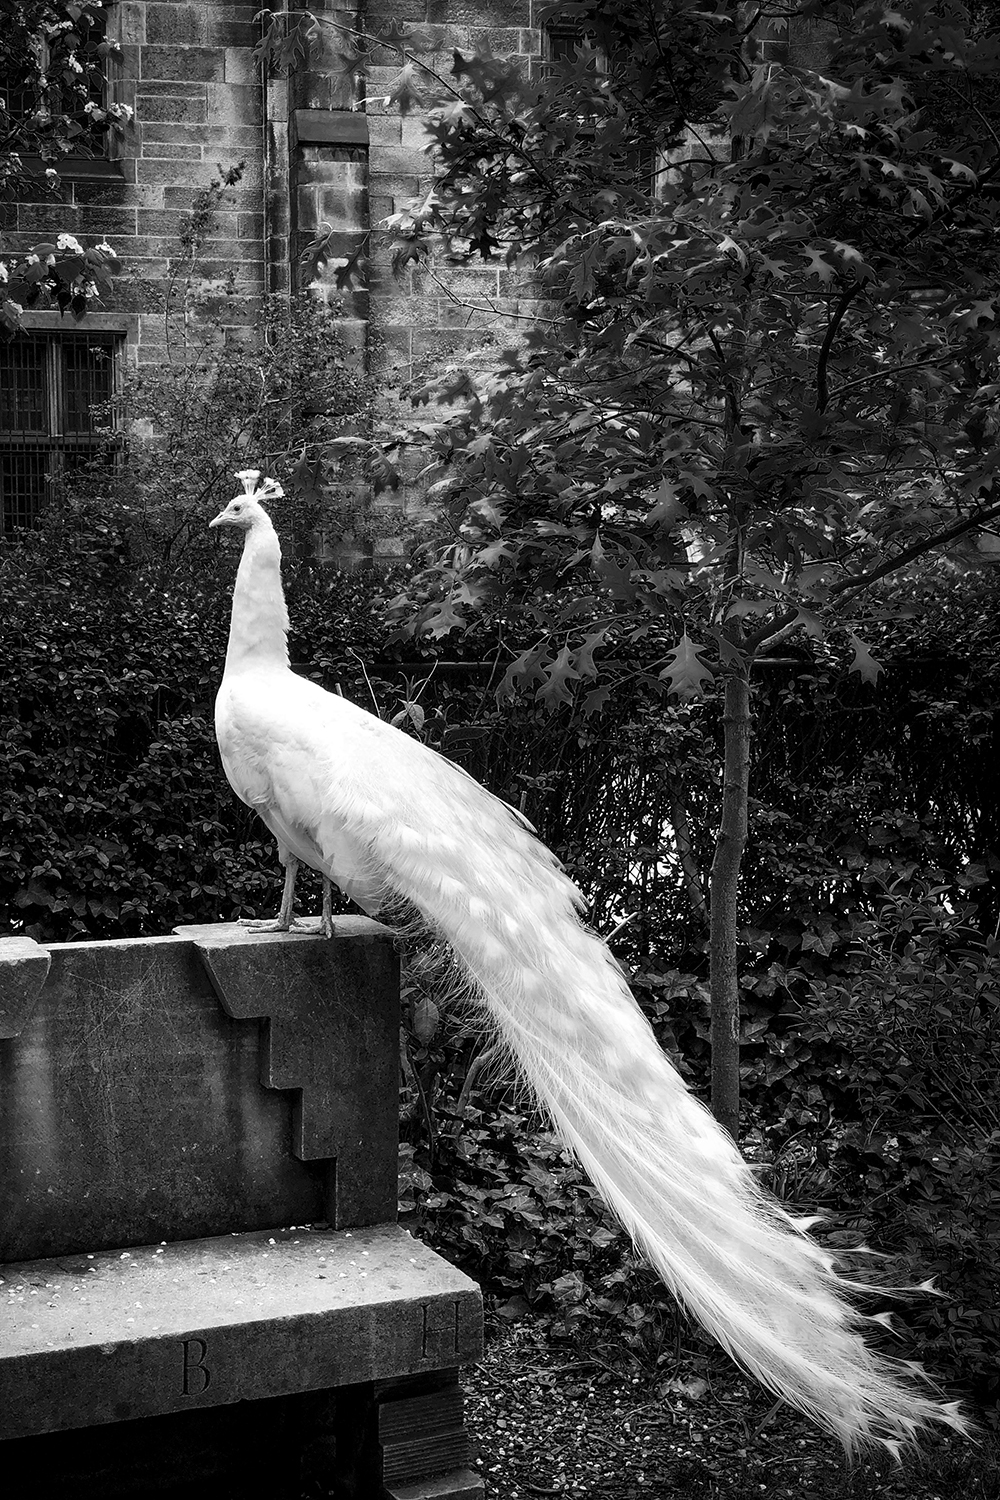 White Peacock in the Garden, NYC, 2018 ,  Frank Mullaney